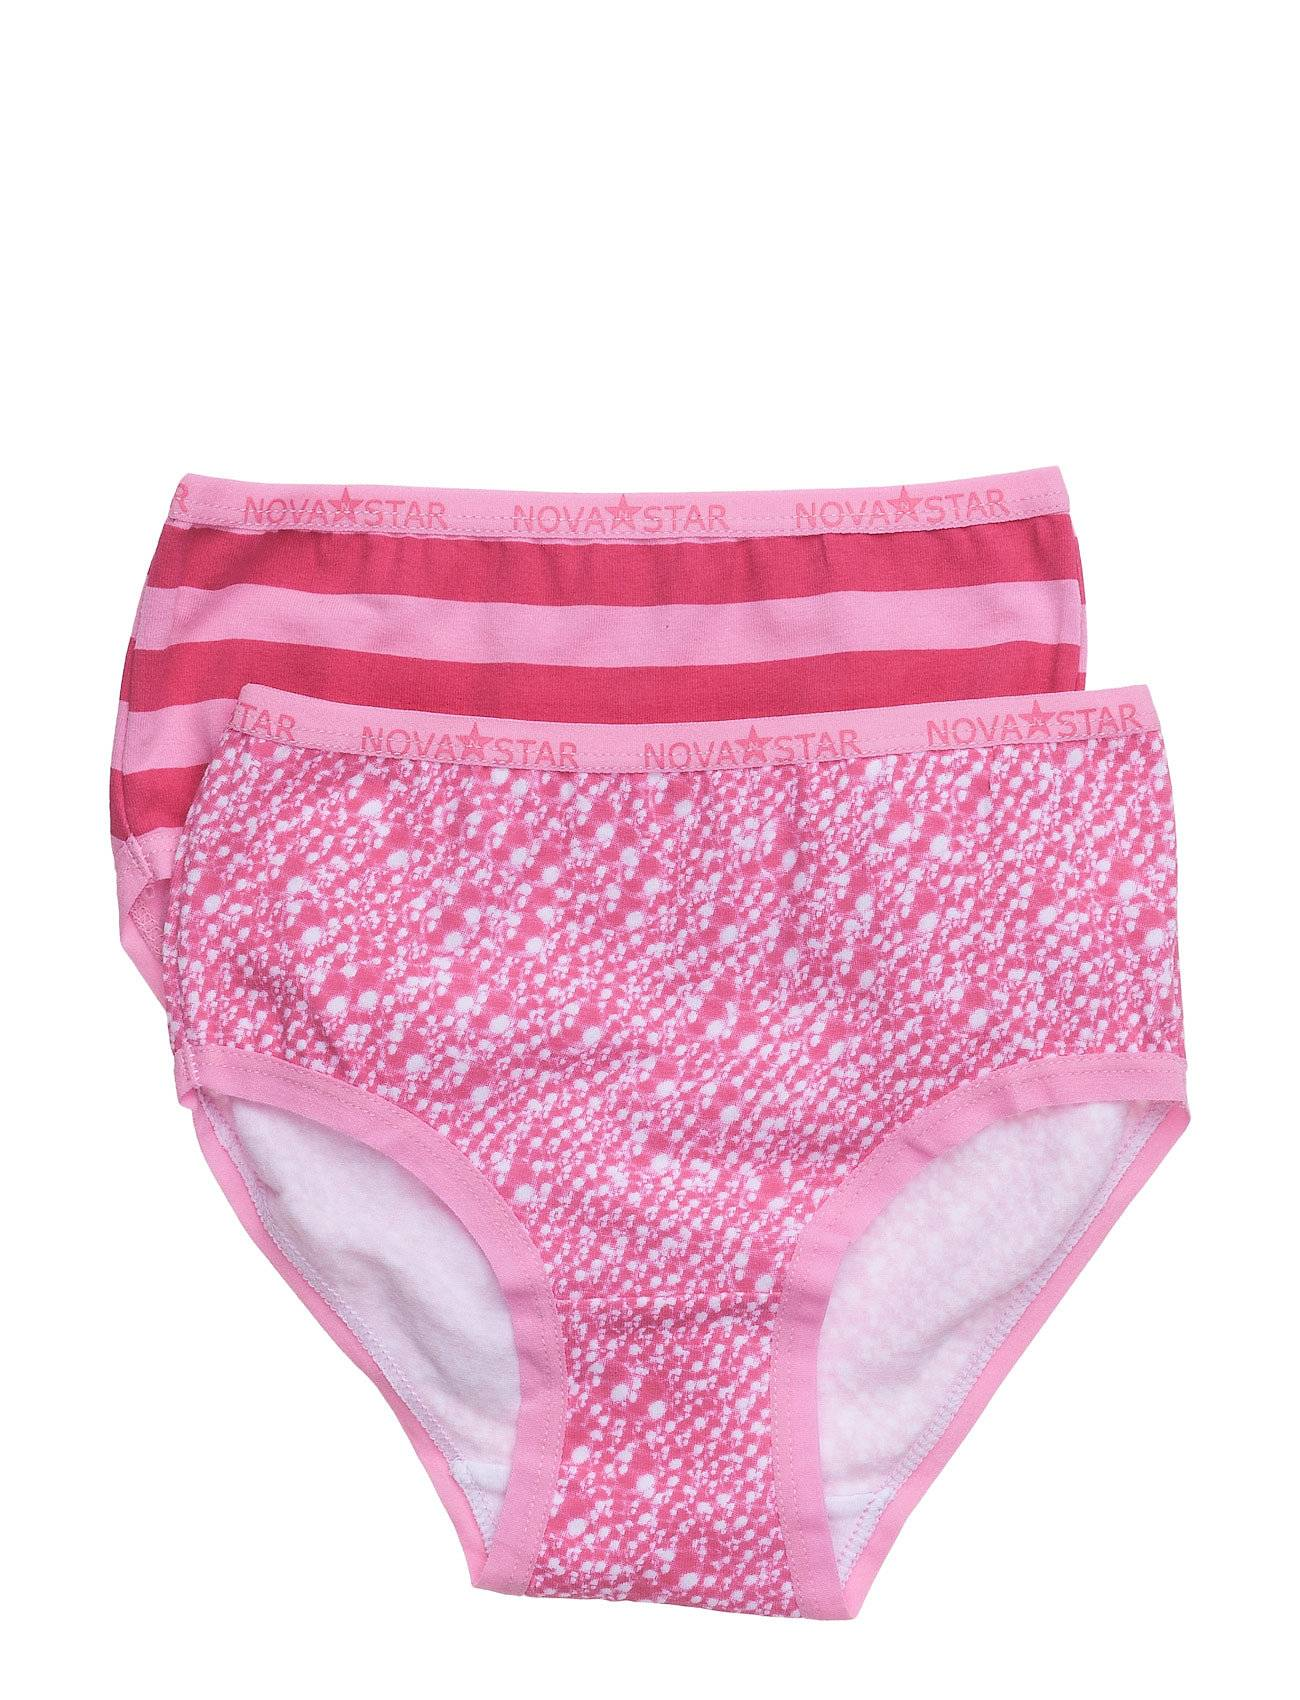 NOVA STAR Pink Girlie Briefs